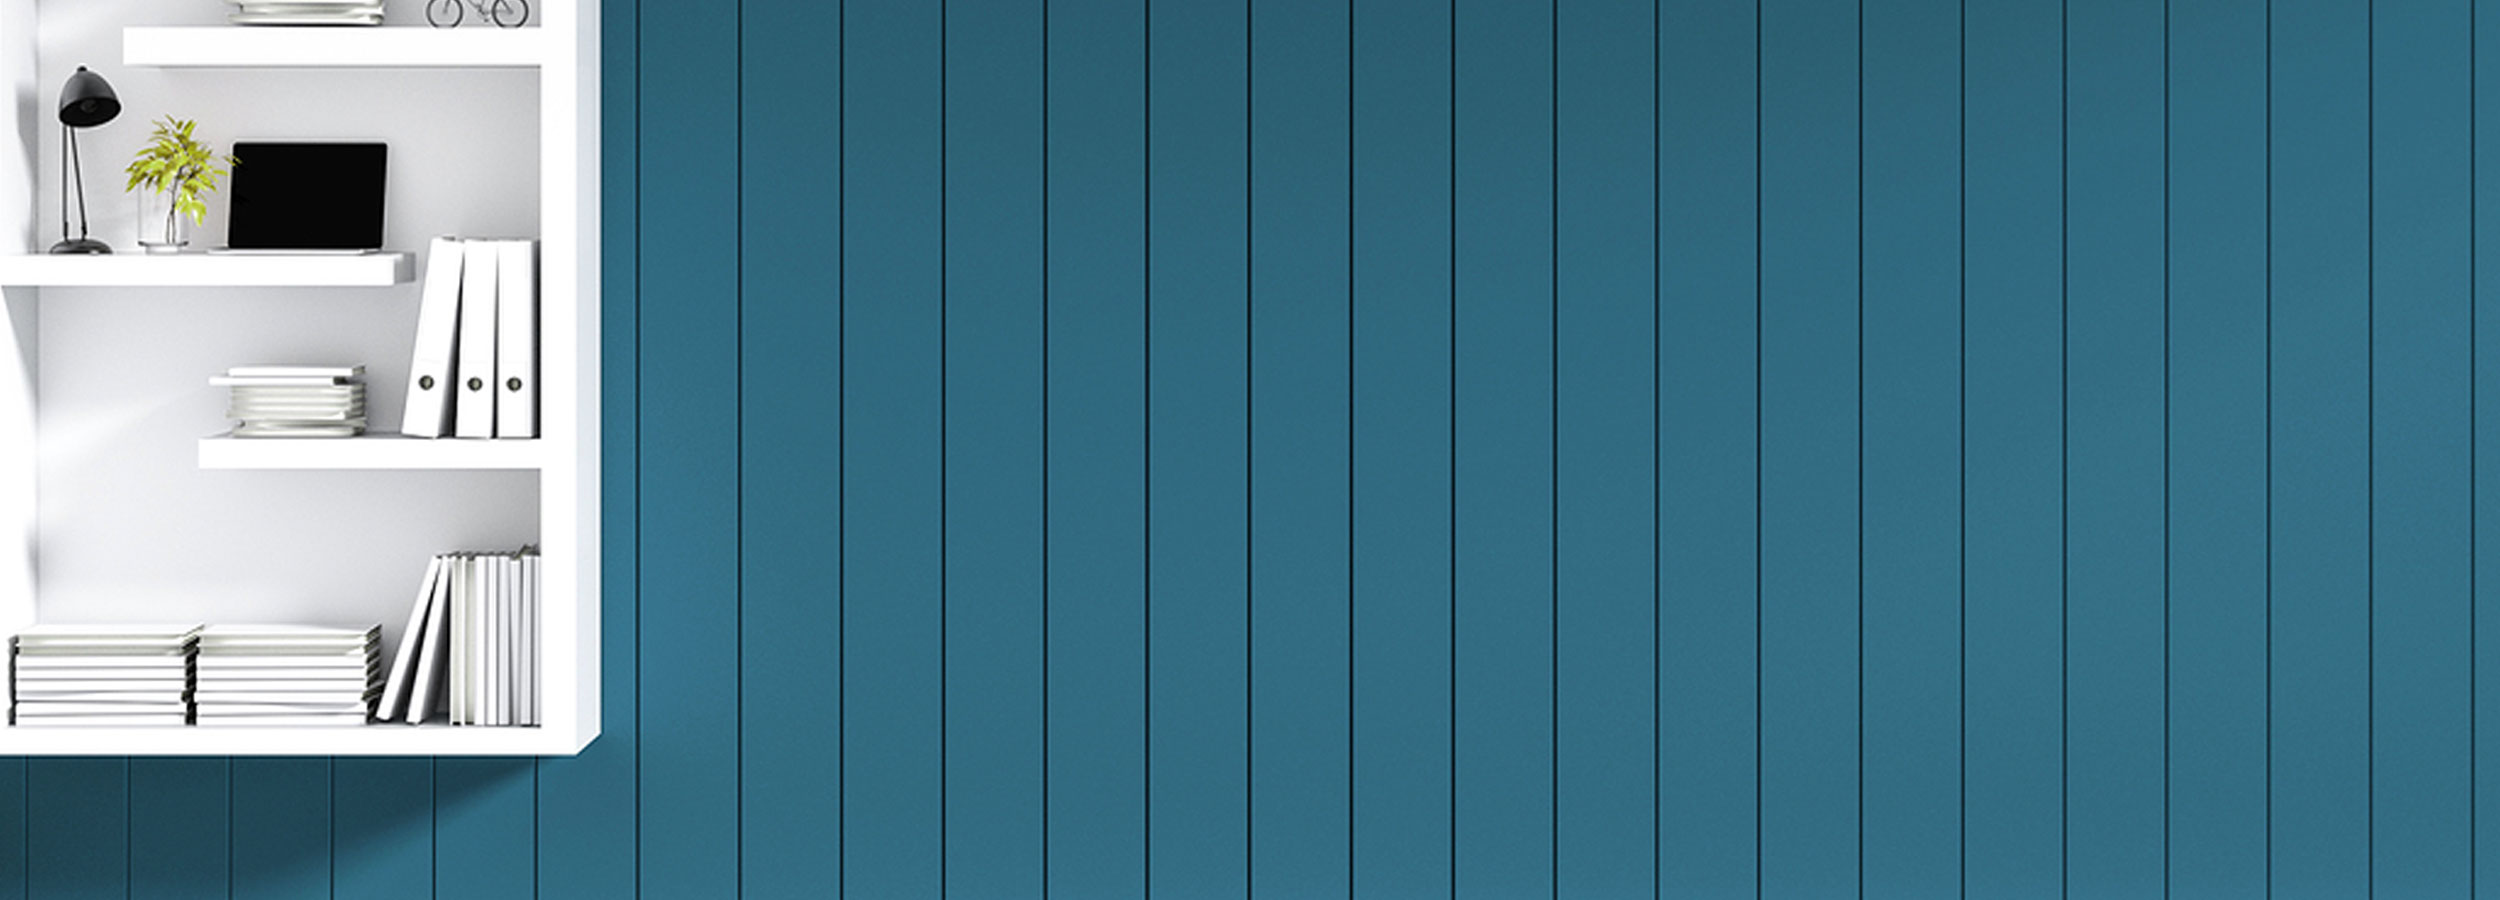 DAP-1325-Background